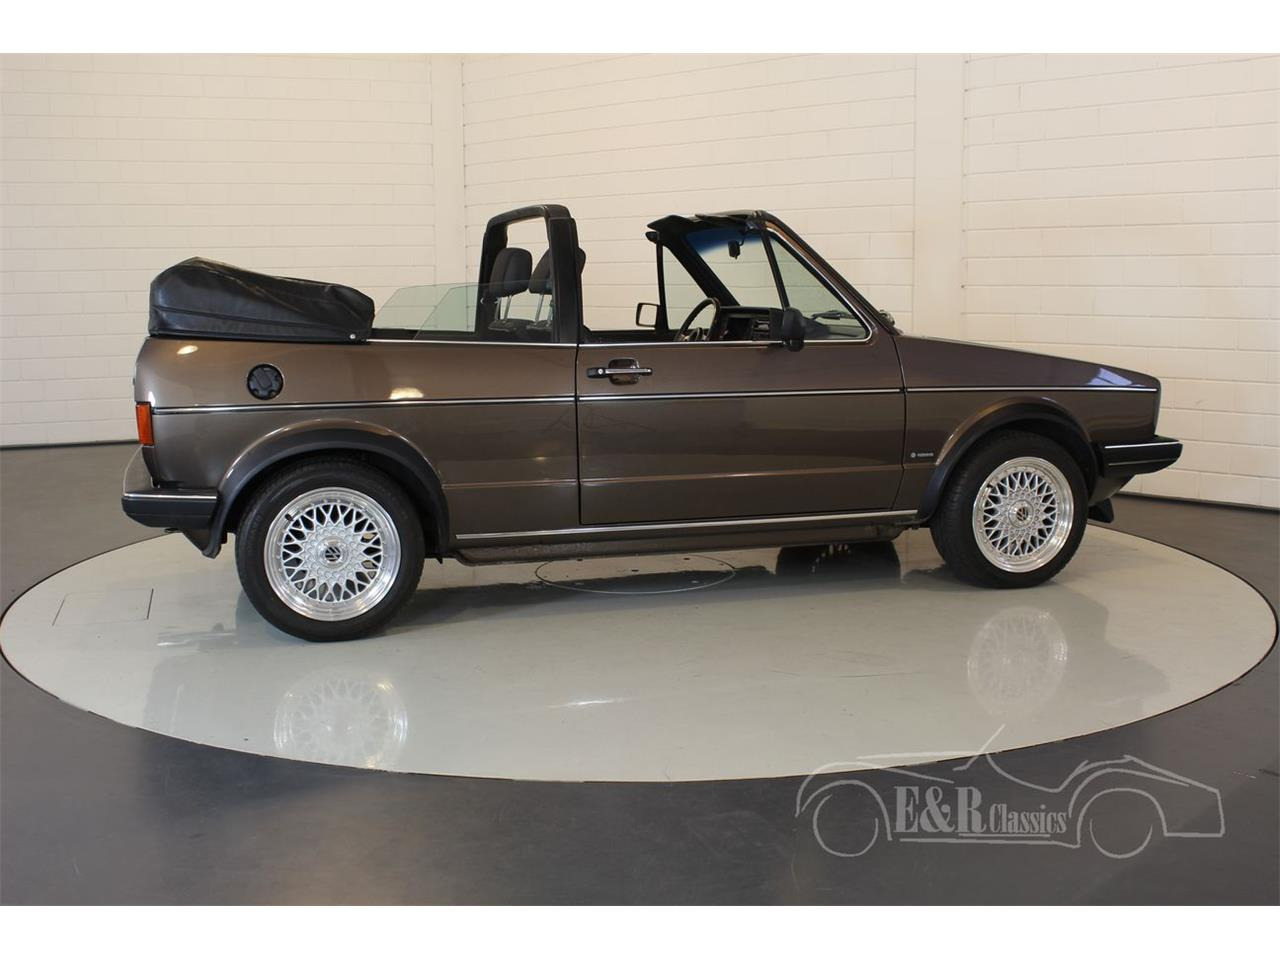 Large Picture of '84 Volkswagen Golf located in Waalwijk - Keine Angabe - - $19,100.00 Offered by E & R Classics - PH4B